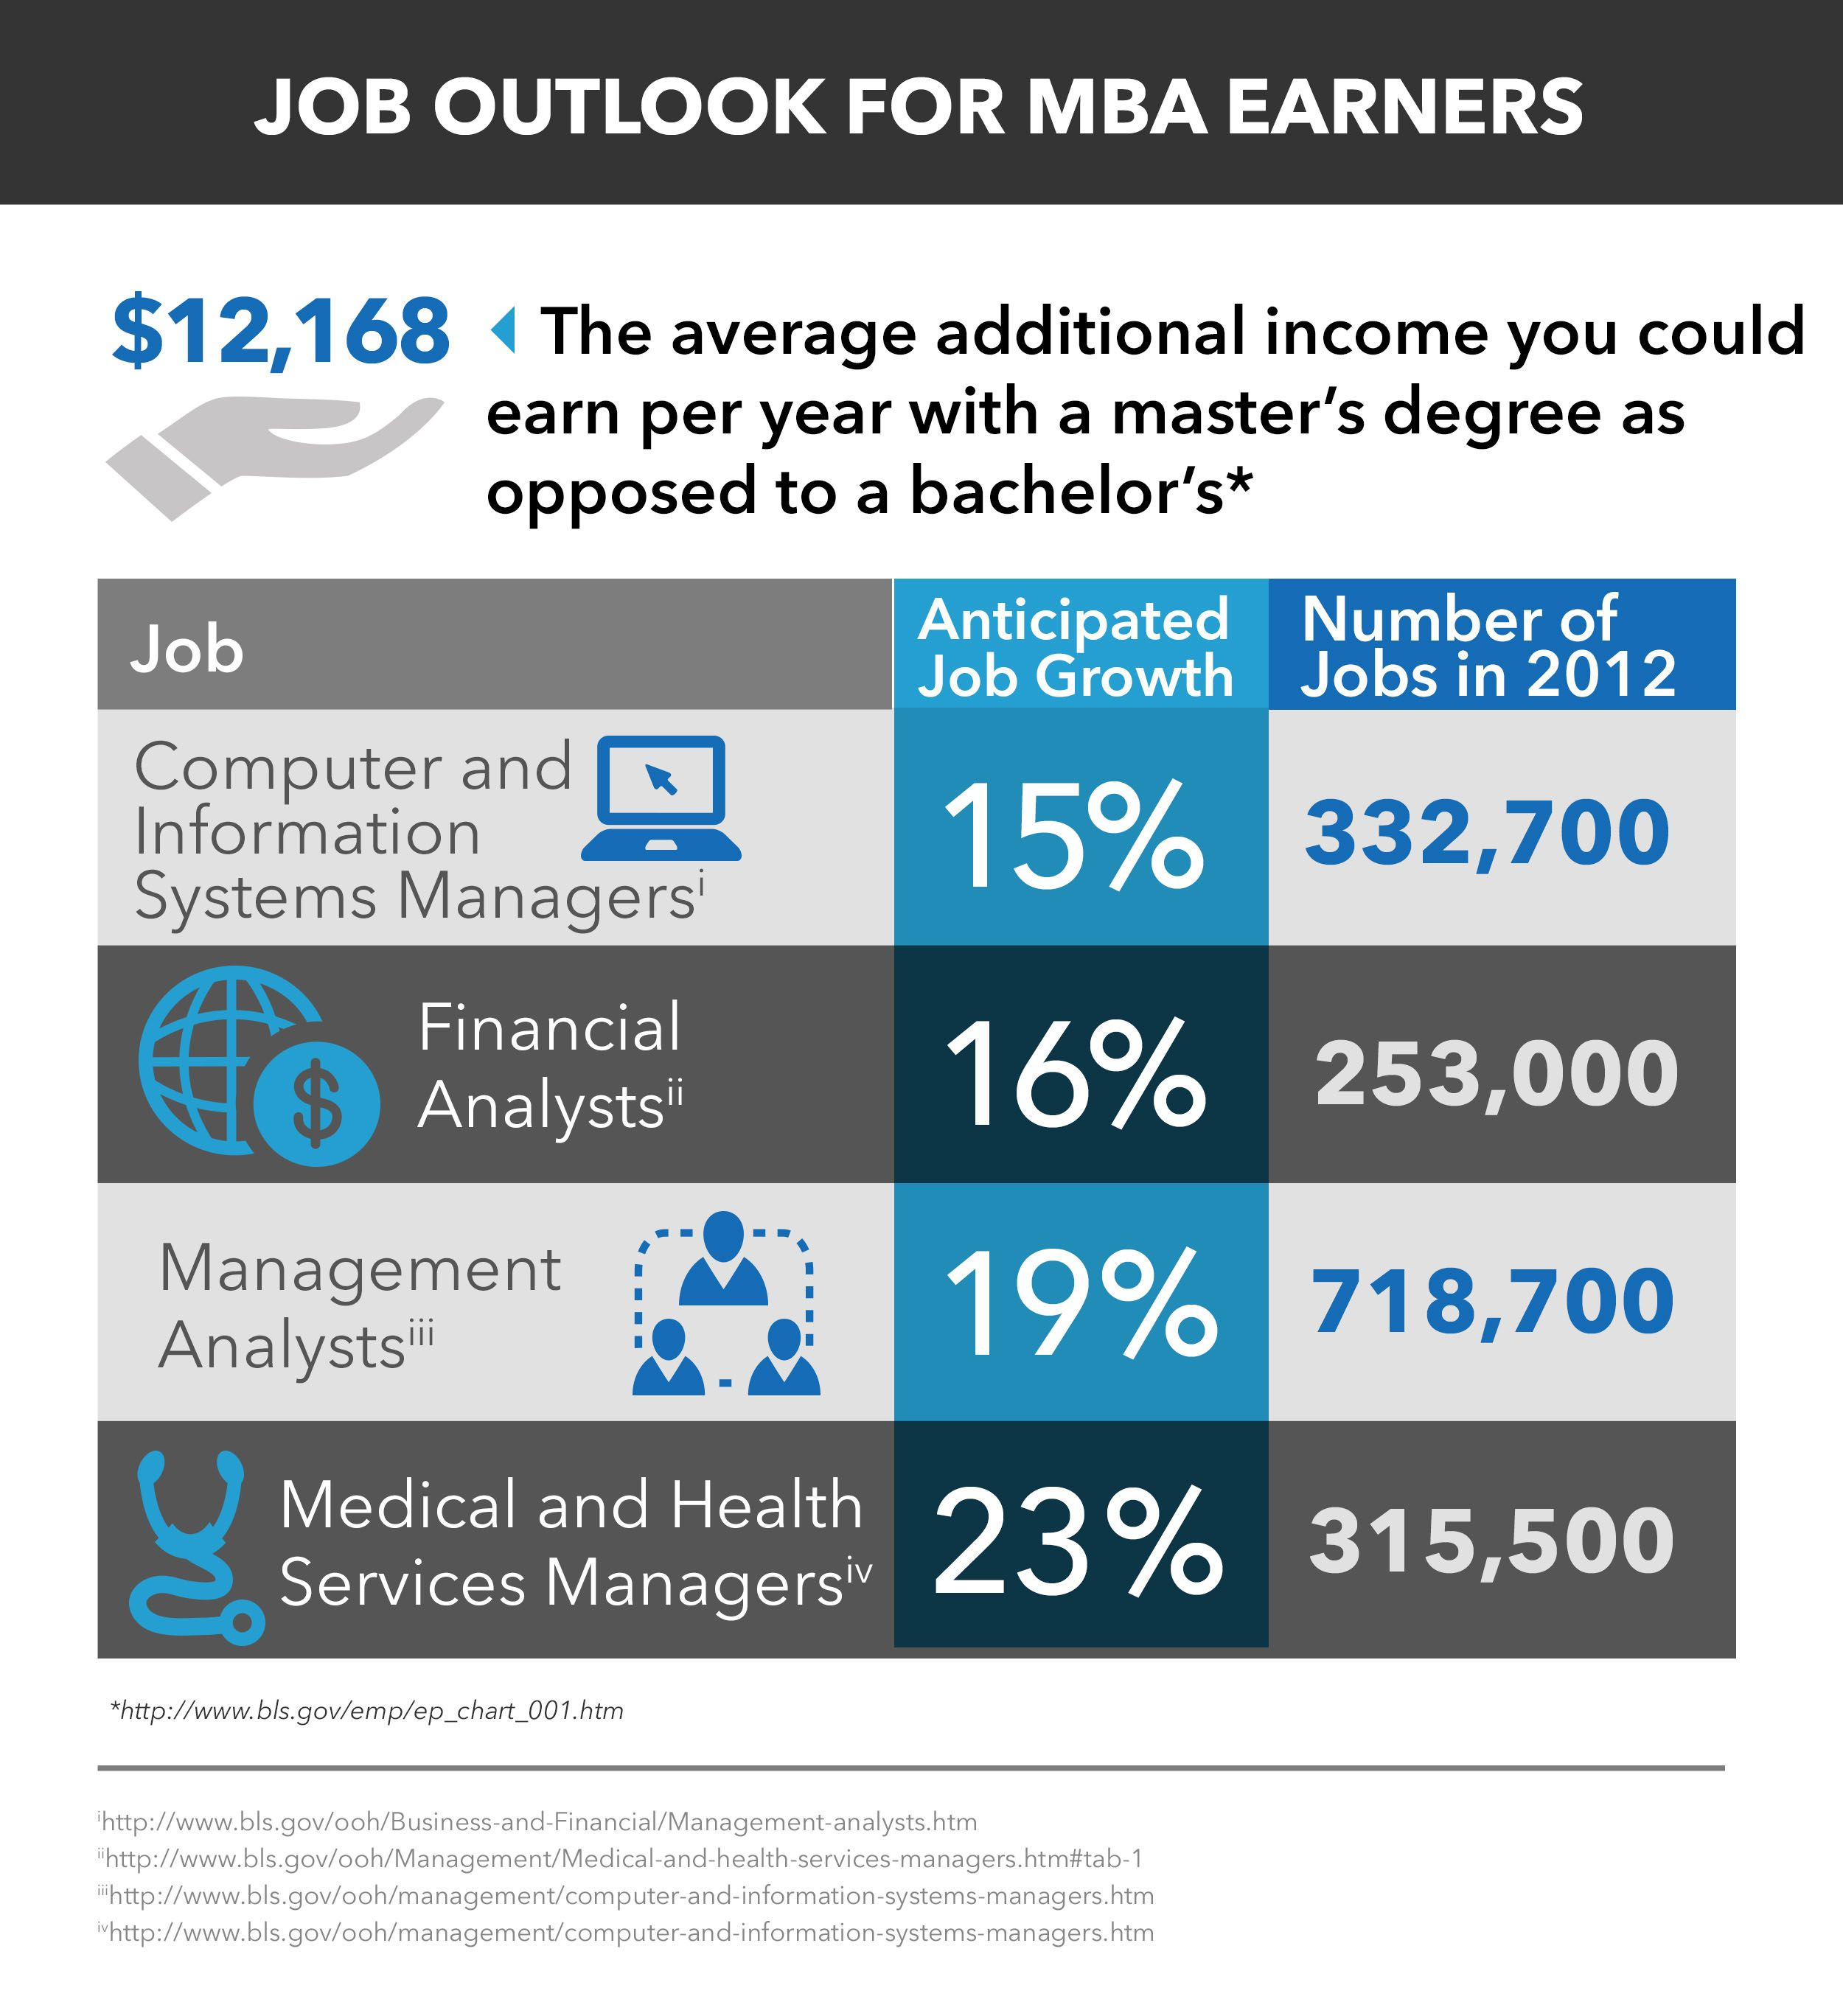 Mba Job Outlook Jobs For Freshers Mba Salary Healthcare Administration